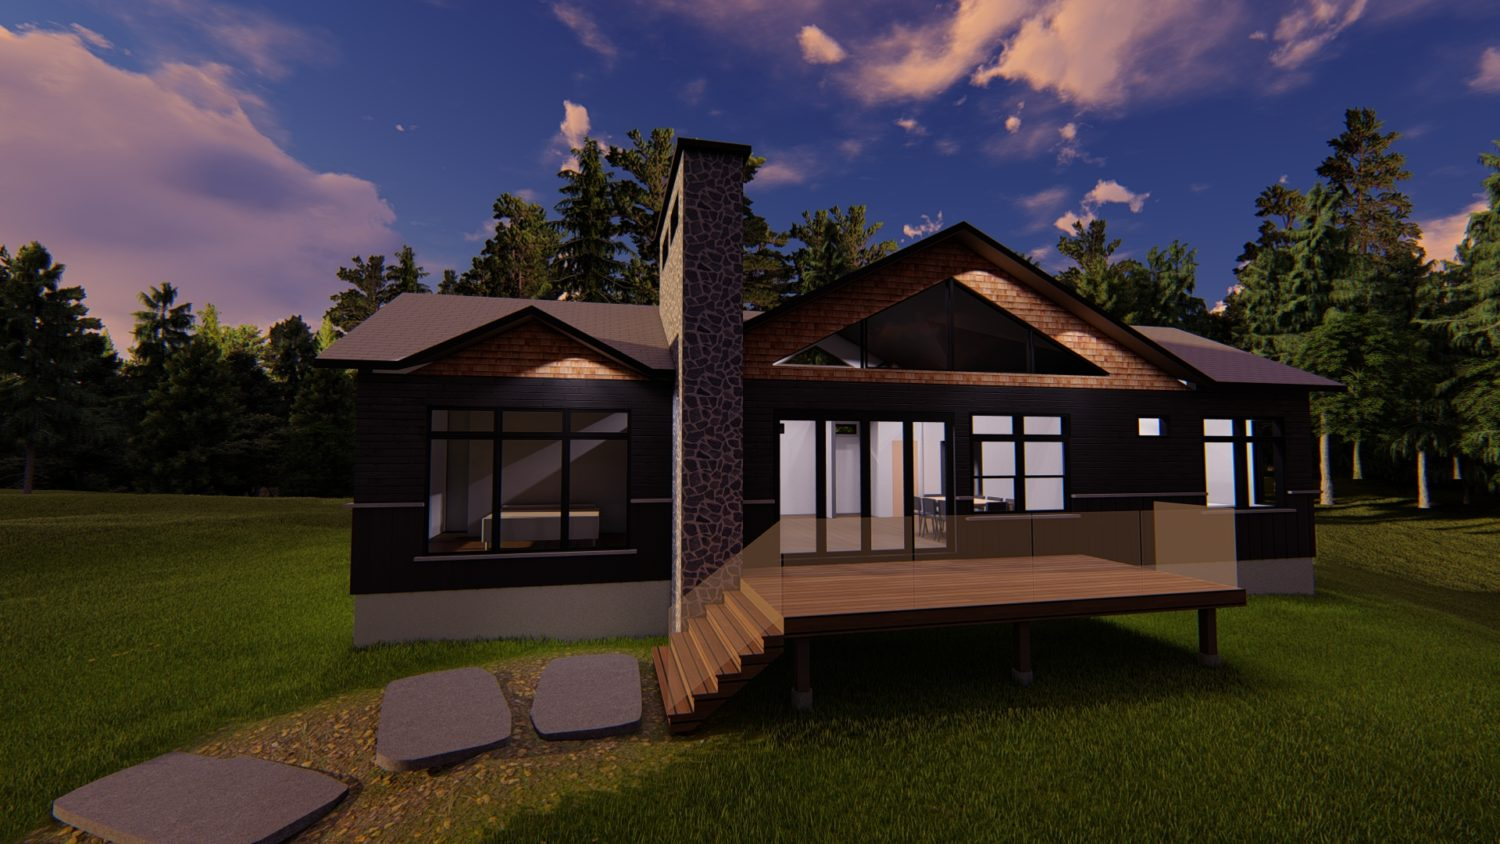 3D rendering of Muskoka cottage by Spencer Douglas and PattyMac